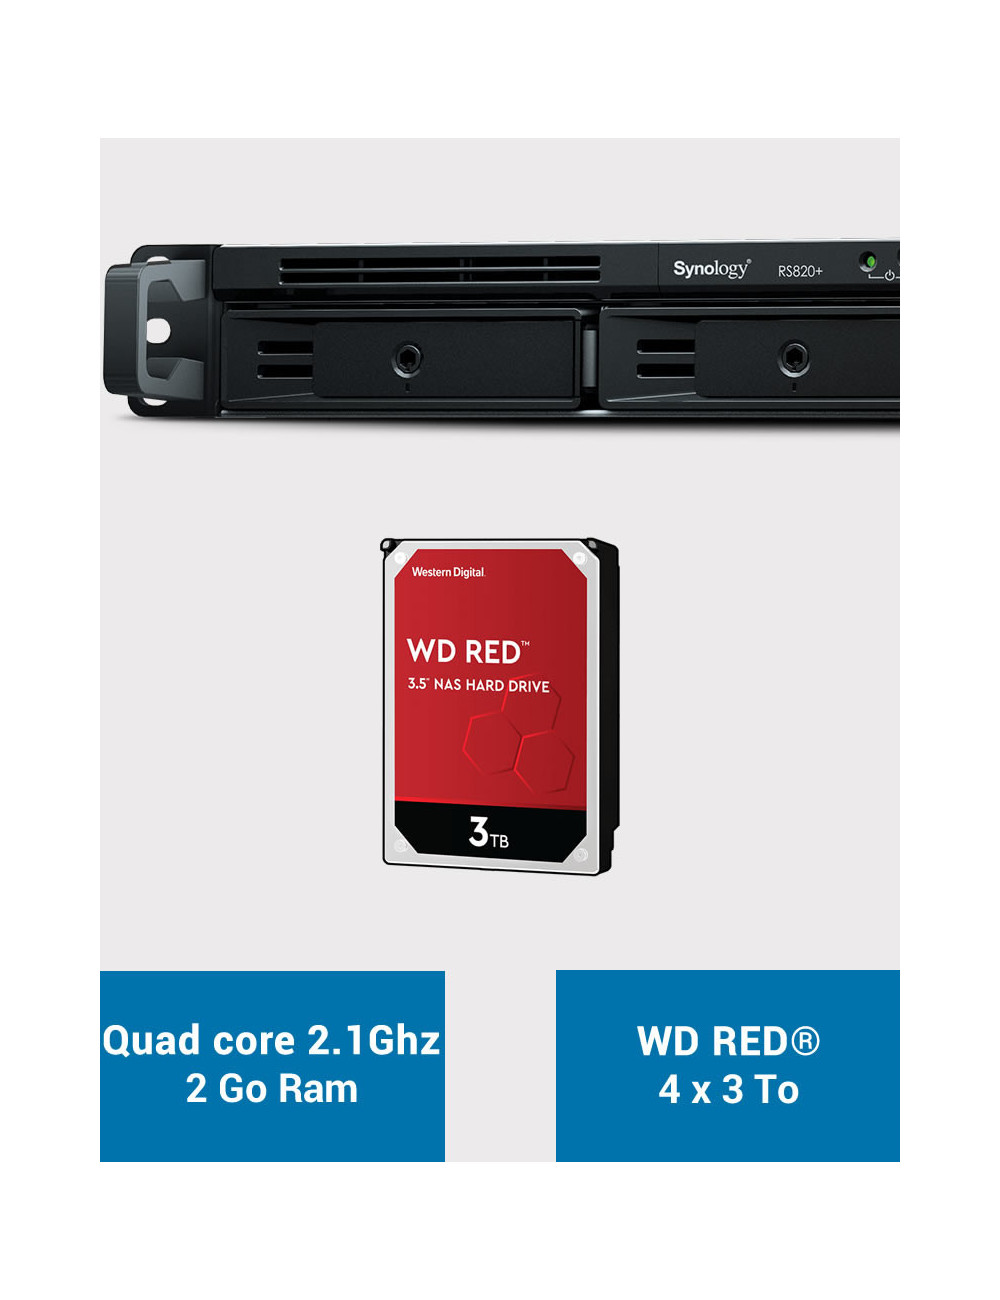 Synology RS820+ Serveur NAS WD RED 12To (4x3To)